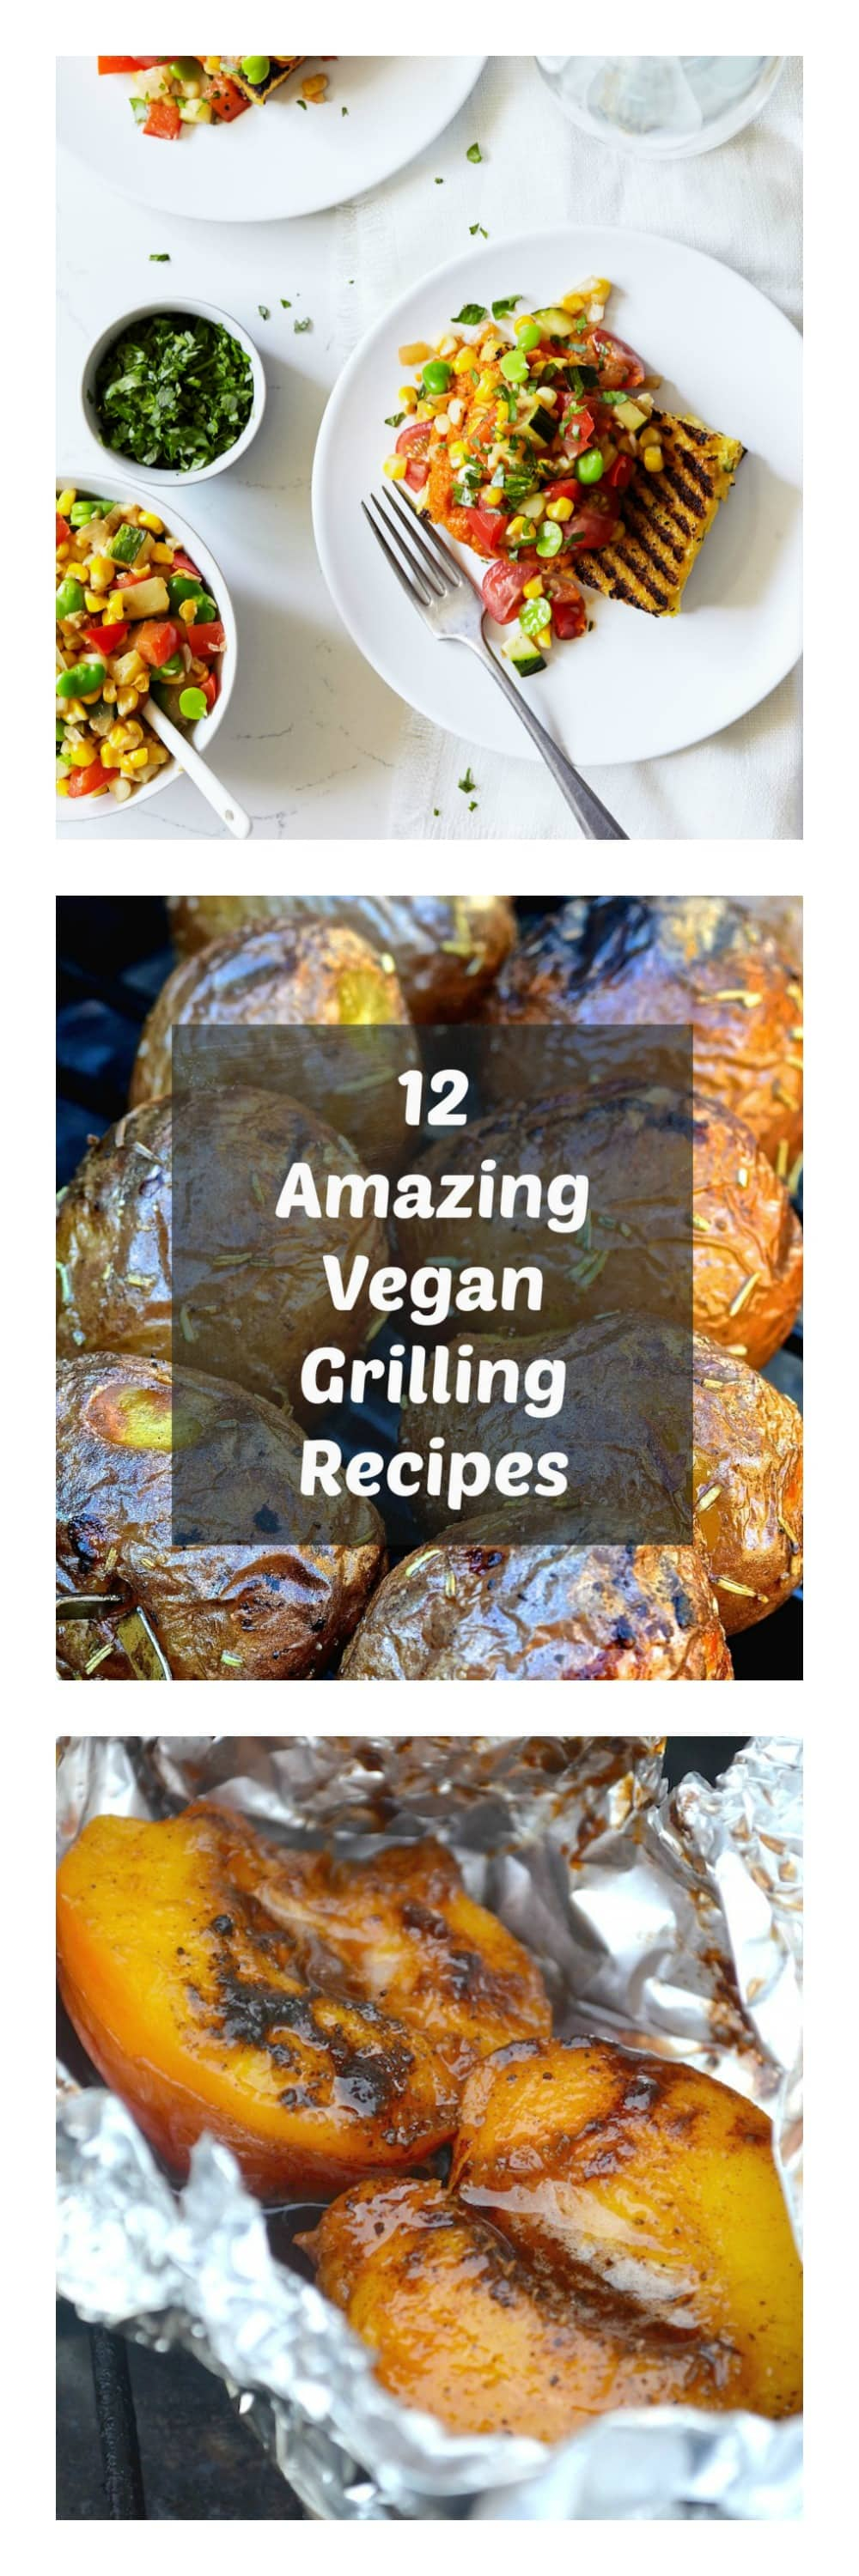 It's summer, the weather is great and grills are being fired up all over. Just because you are vegan does not mean you have to miss out on outdoor grilling, and I have rounded up a collection of 12 amazing vegan grilling recipes to inspire you. There is something for everyone in this collection and there is no way that anyone will think you are 'missing out' when your plate is filled with this wonderful, healthy plant-based food!